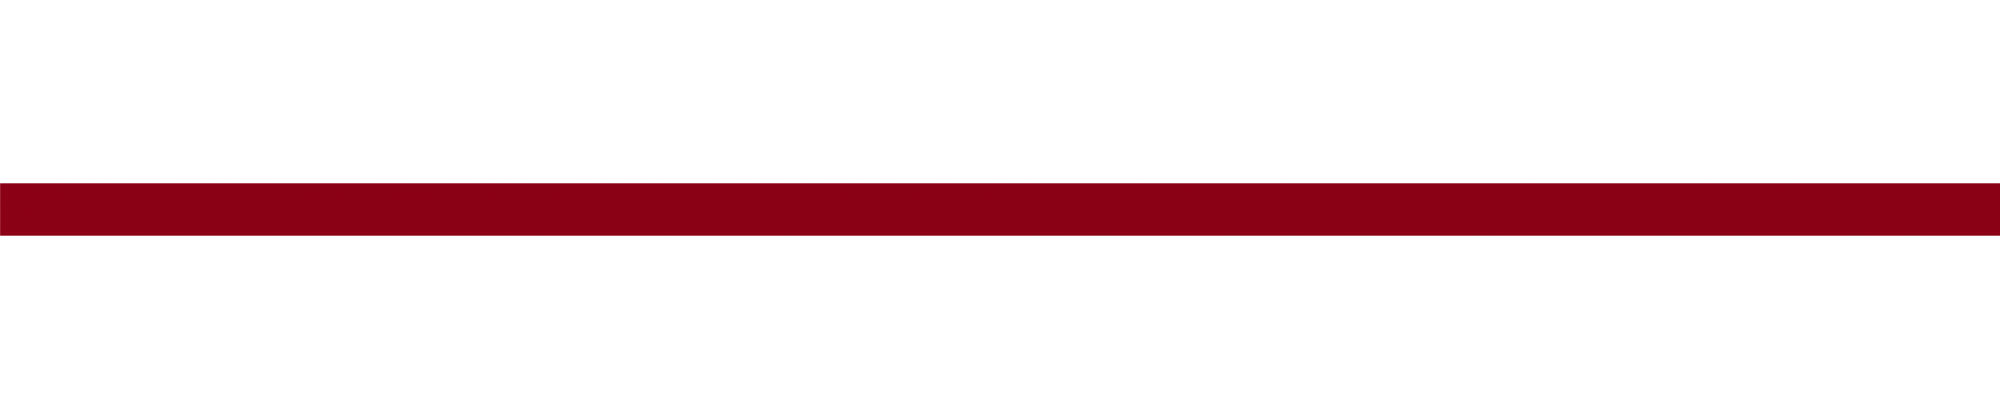 Thin, solid red bar used for decorative purposes only